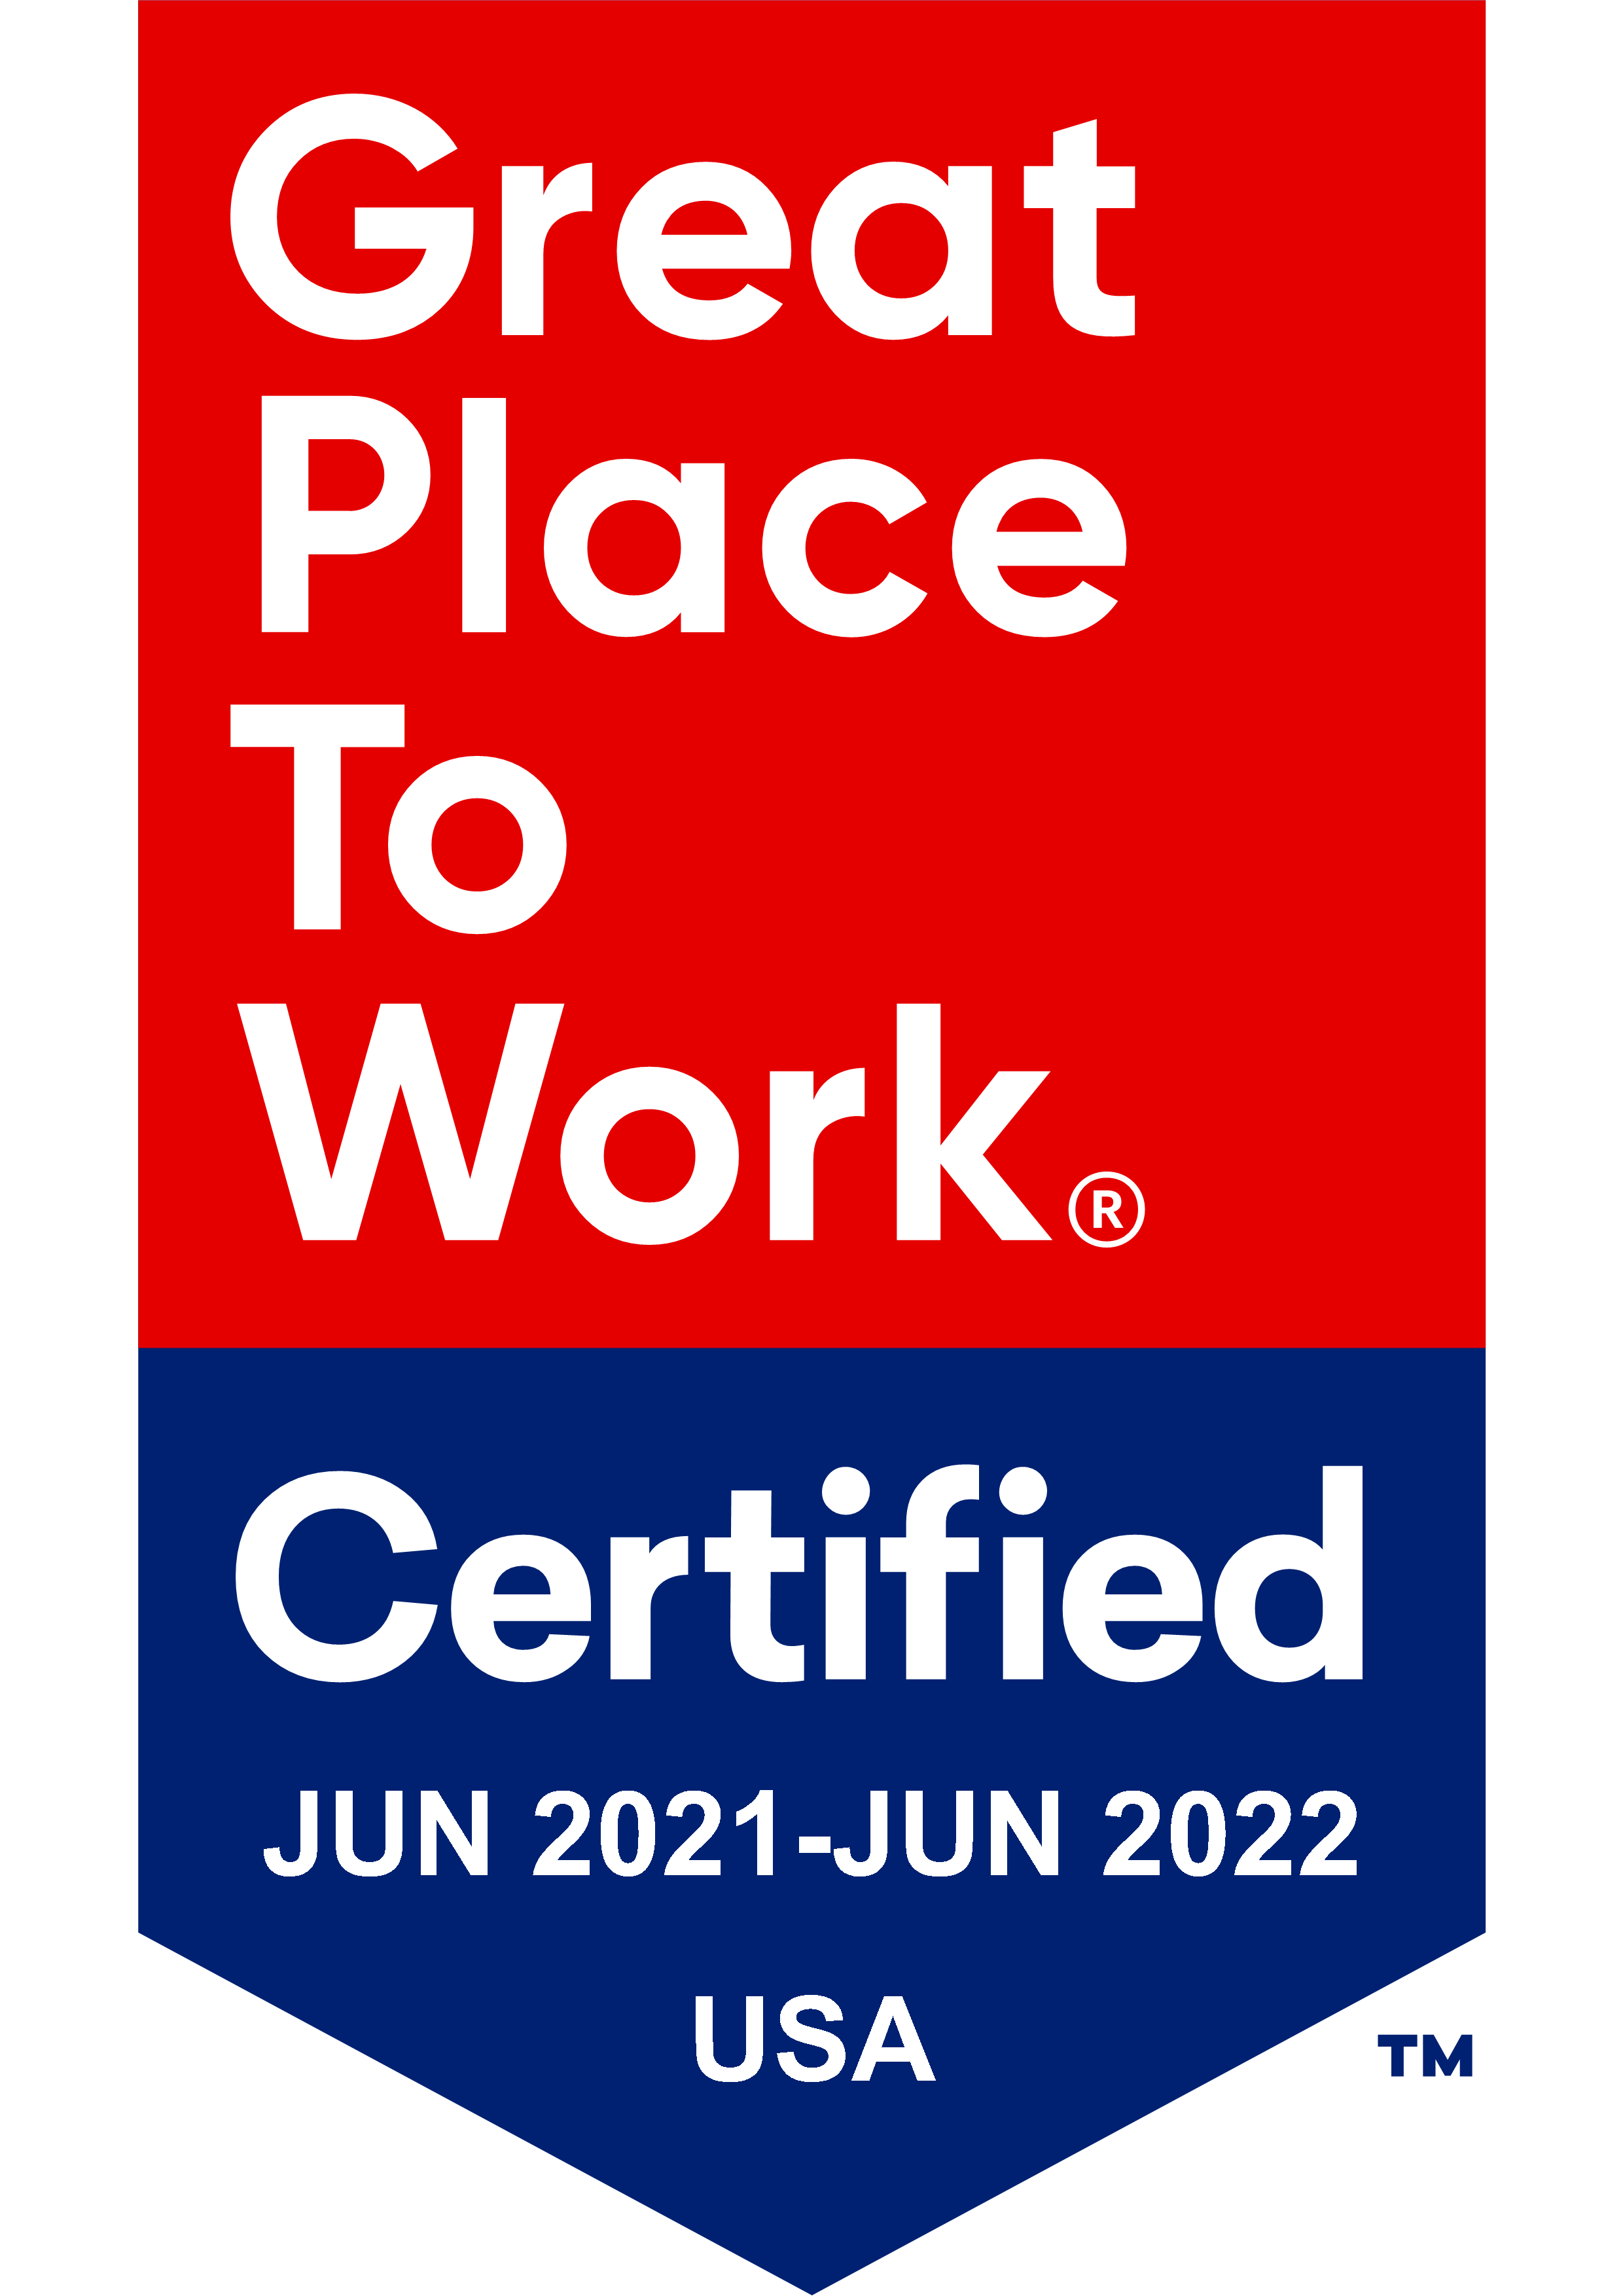 Certified_Great_Place_to_Work_MWHC